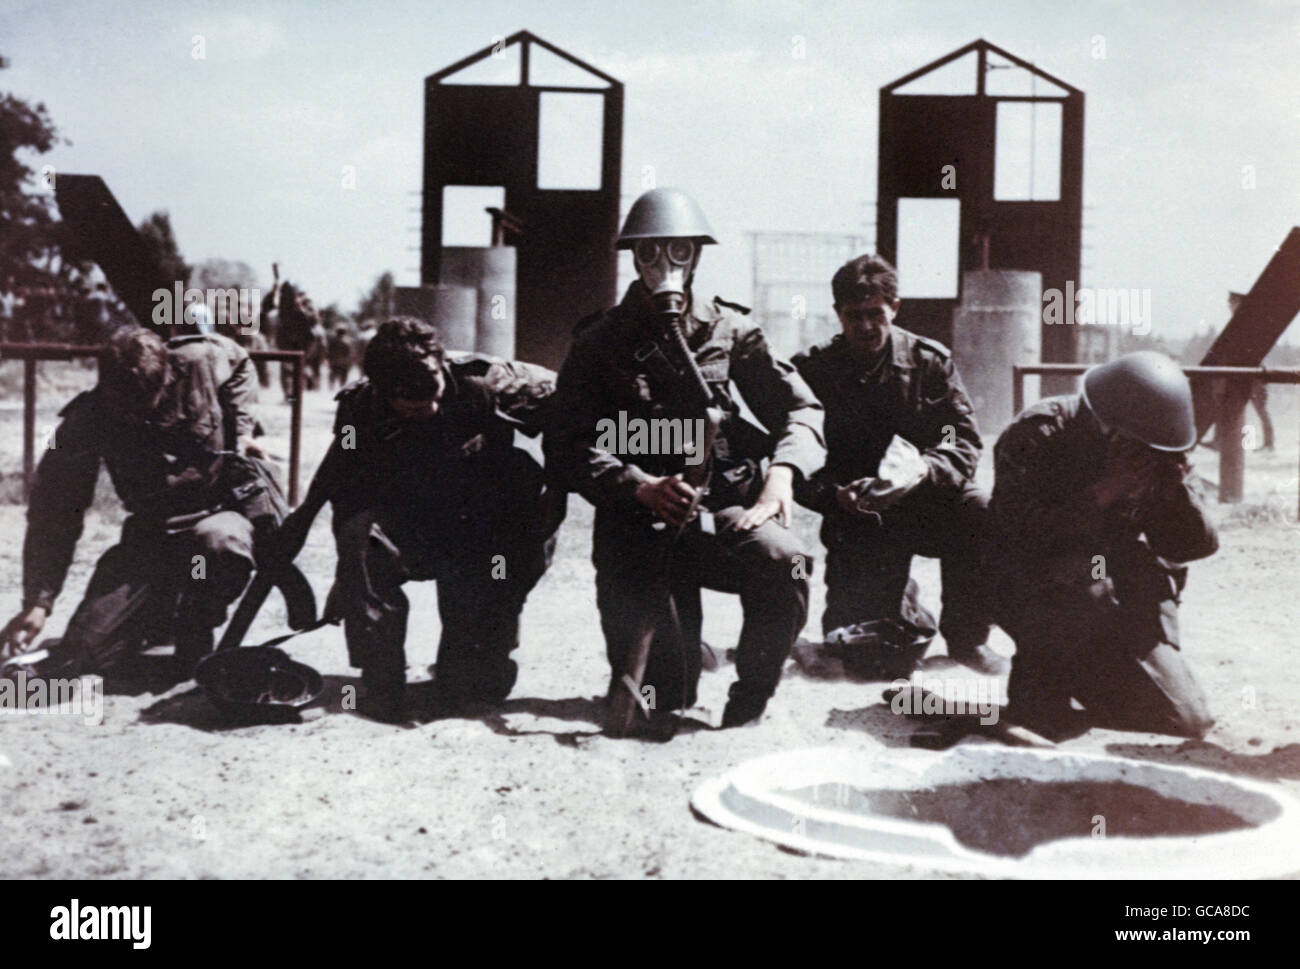 military, German, National People's Army, chemical defence, soldiers with gas masks, 1960s, Additional-Rights - Stock Image